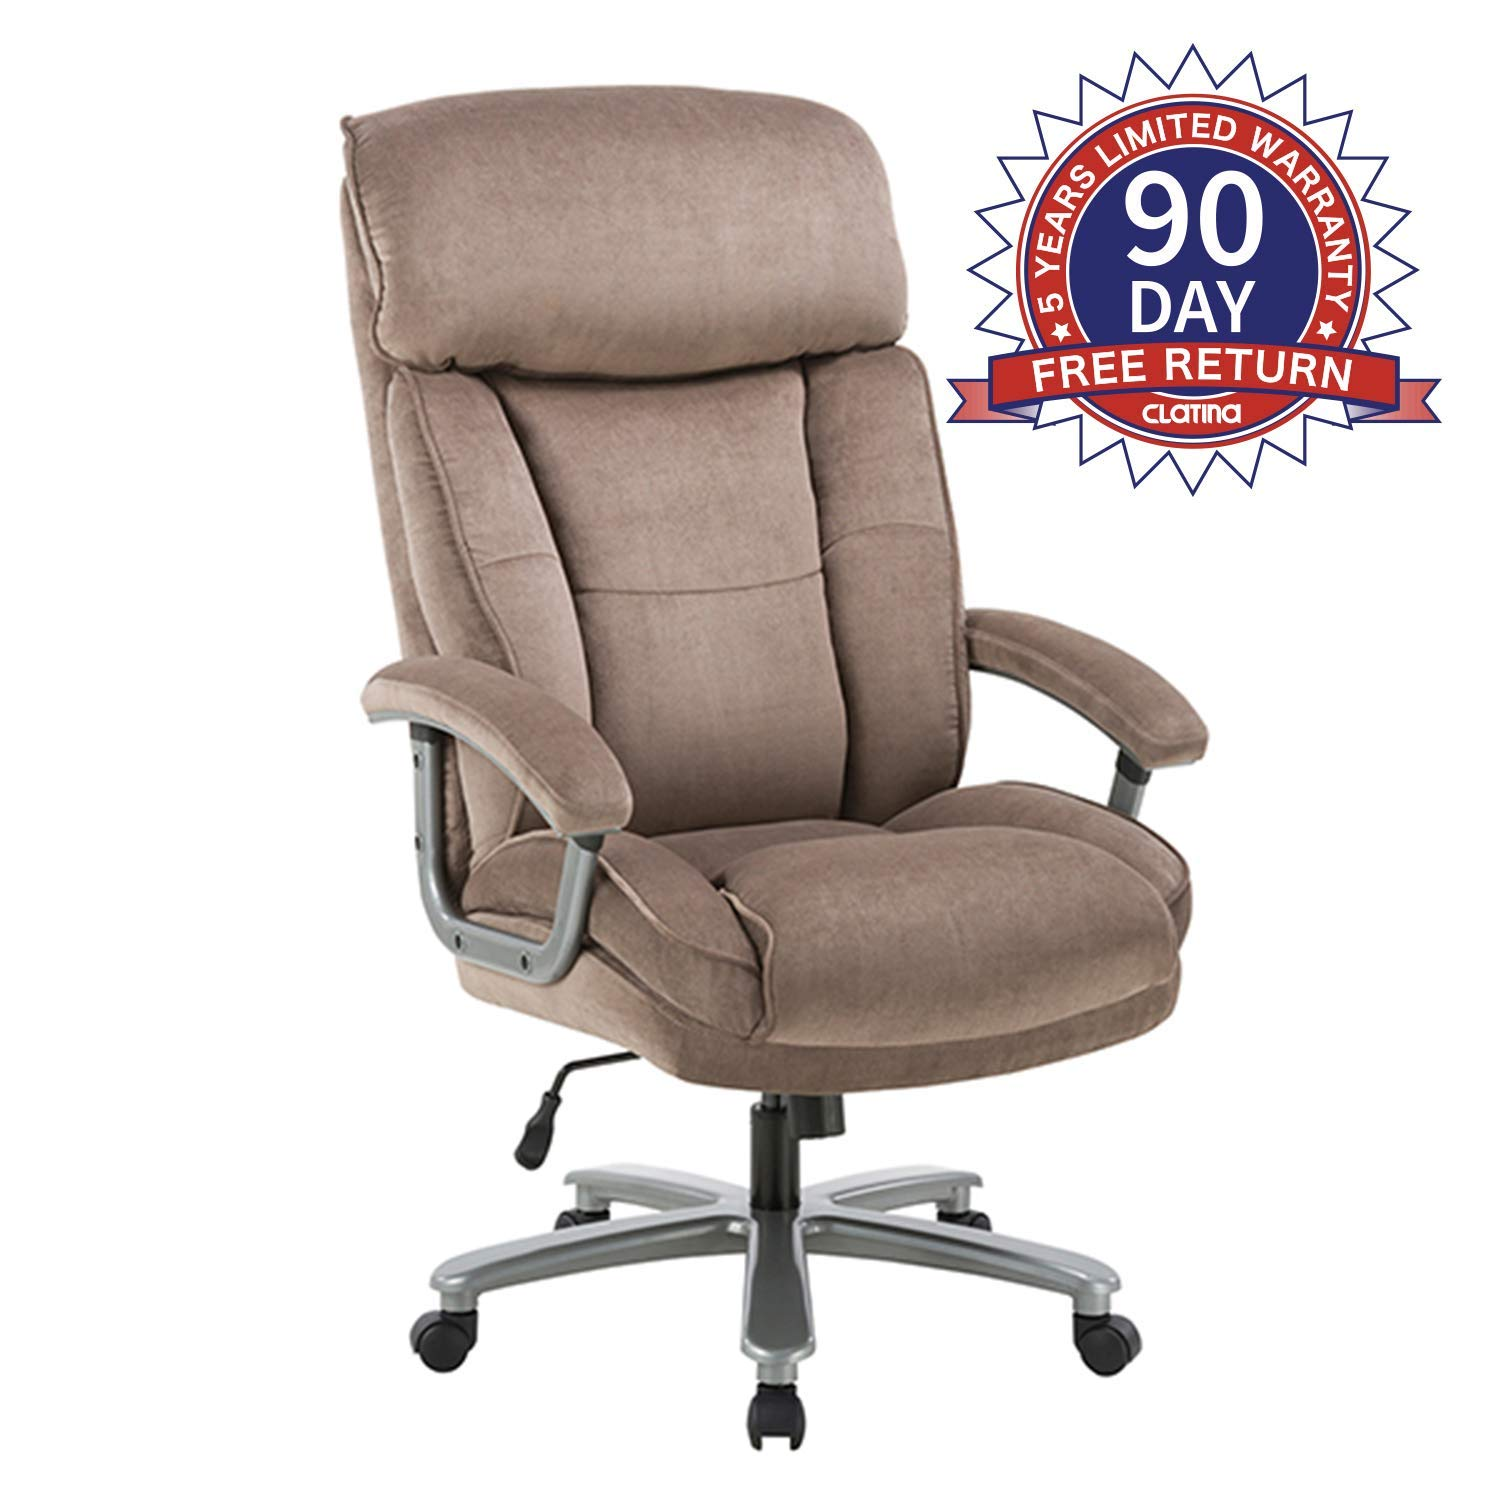 Ergonomic Big & Tall Executive Office Chair with Upholstered Swivel 400lbs High Capacity Adjustable Height Thick Padding Headrest and Armrest for Home Office Beige by CLATINA